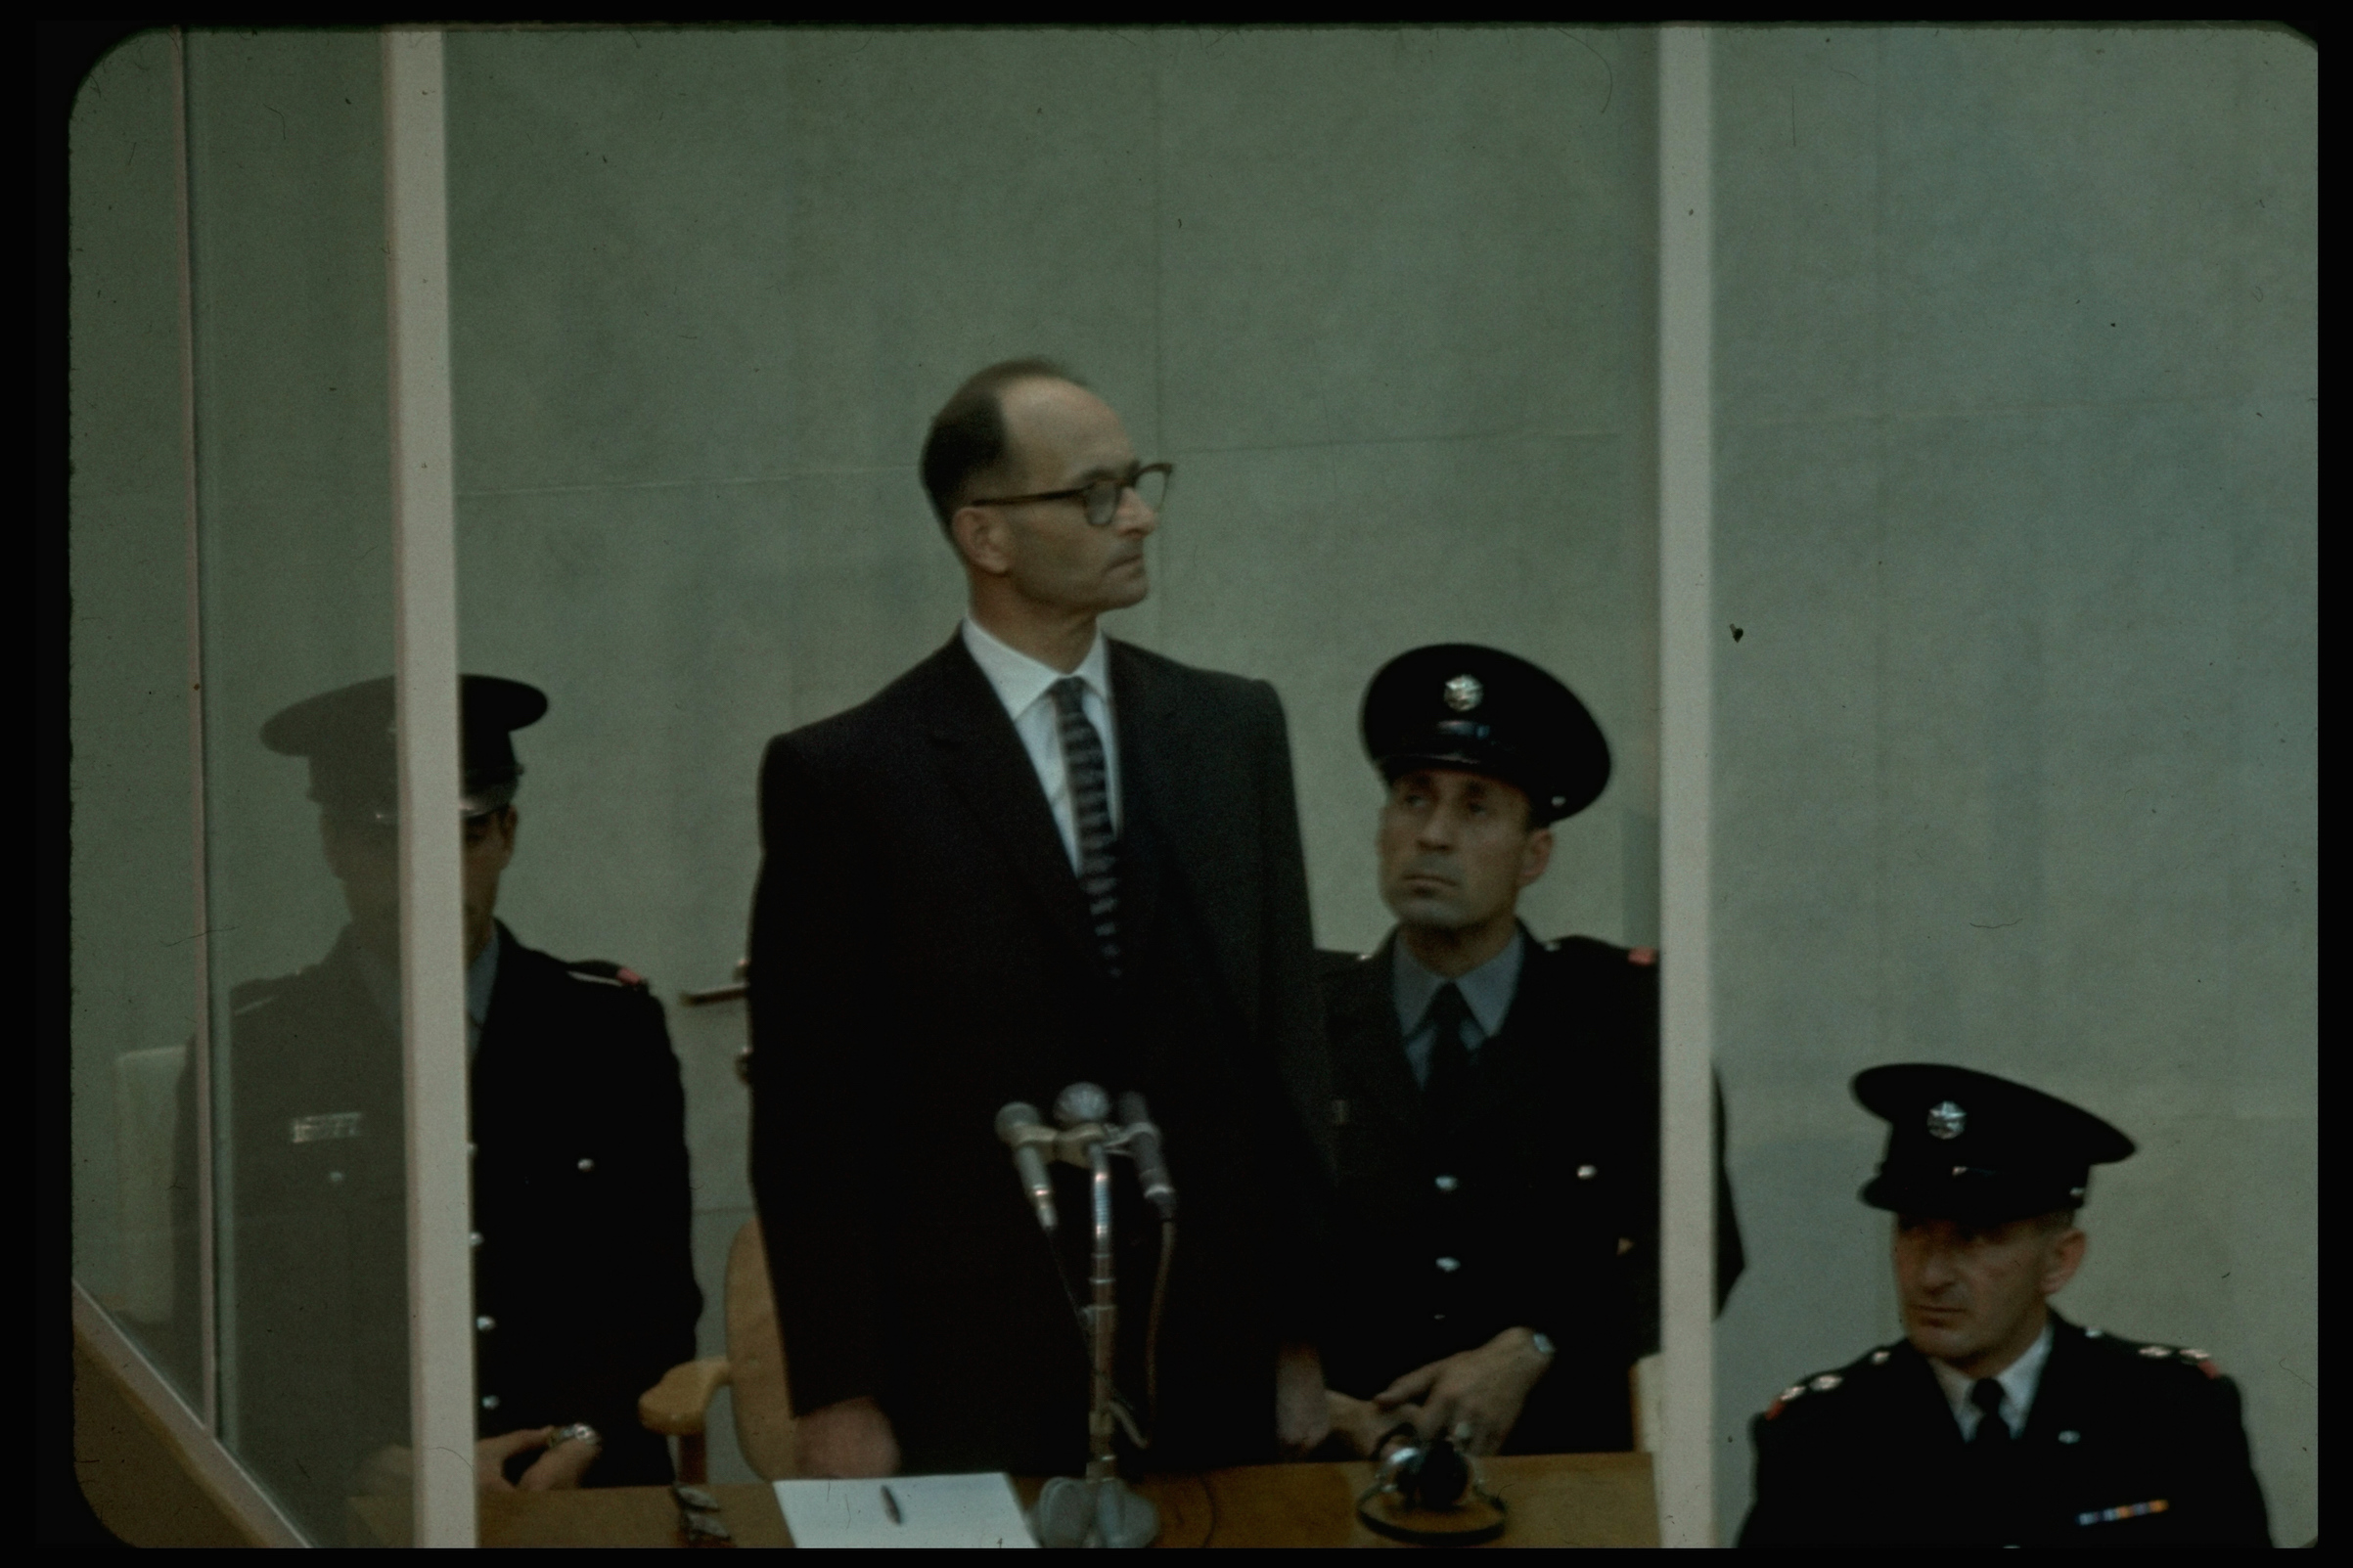 Nazi Adolf Eichmann standing in prisoner's cage during reading of indictment against him at his trial for war crimes, in 1961.